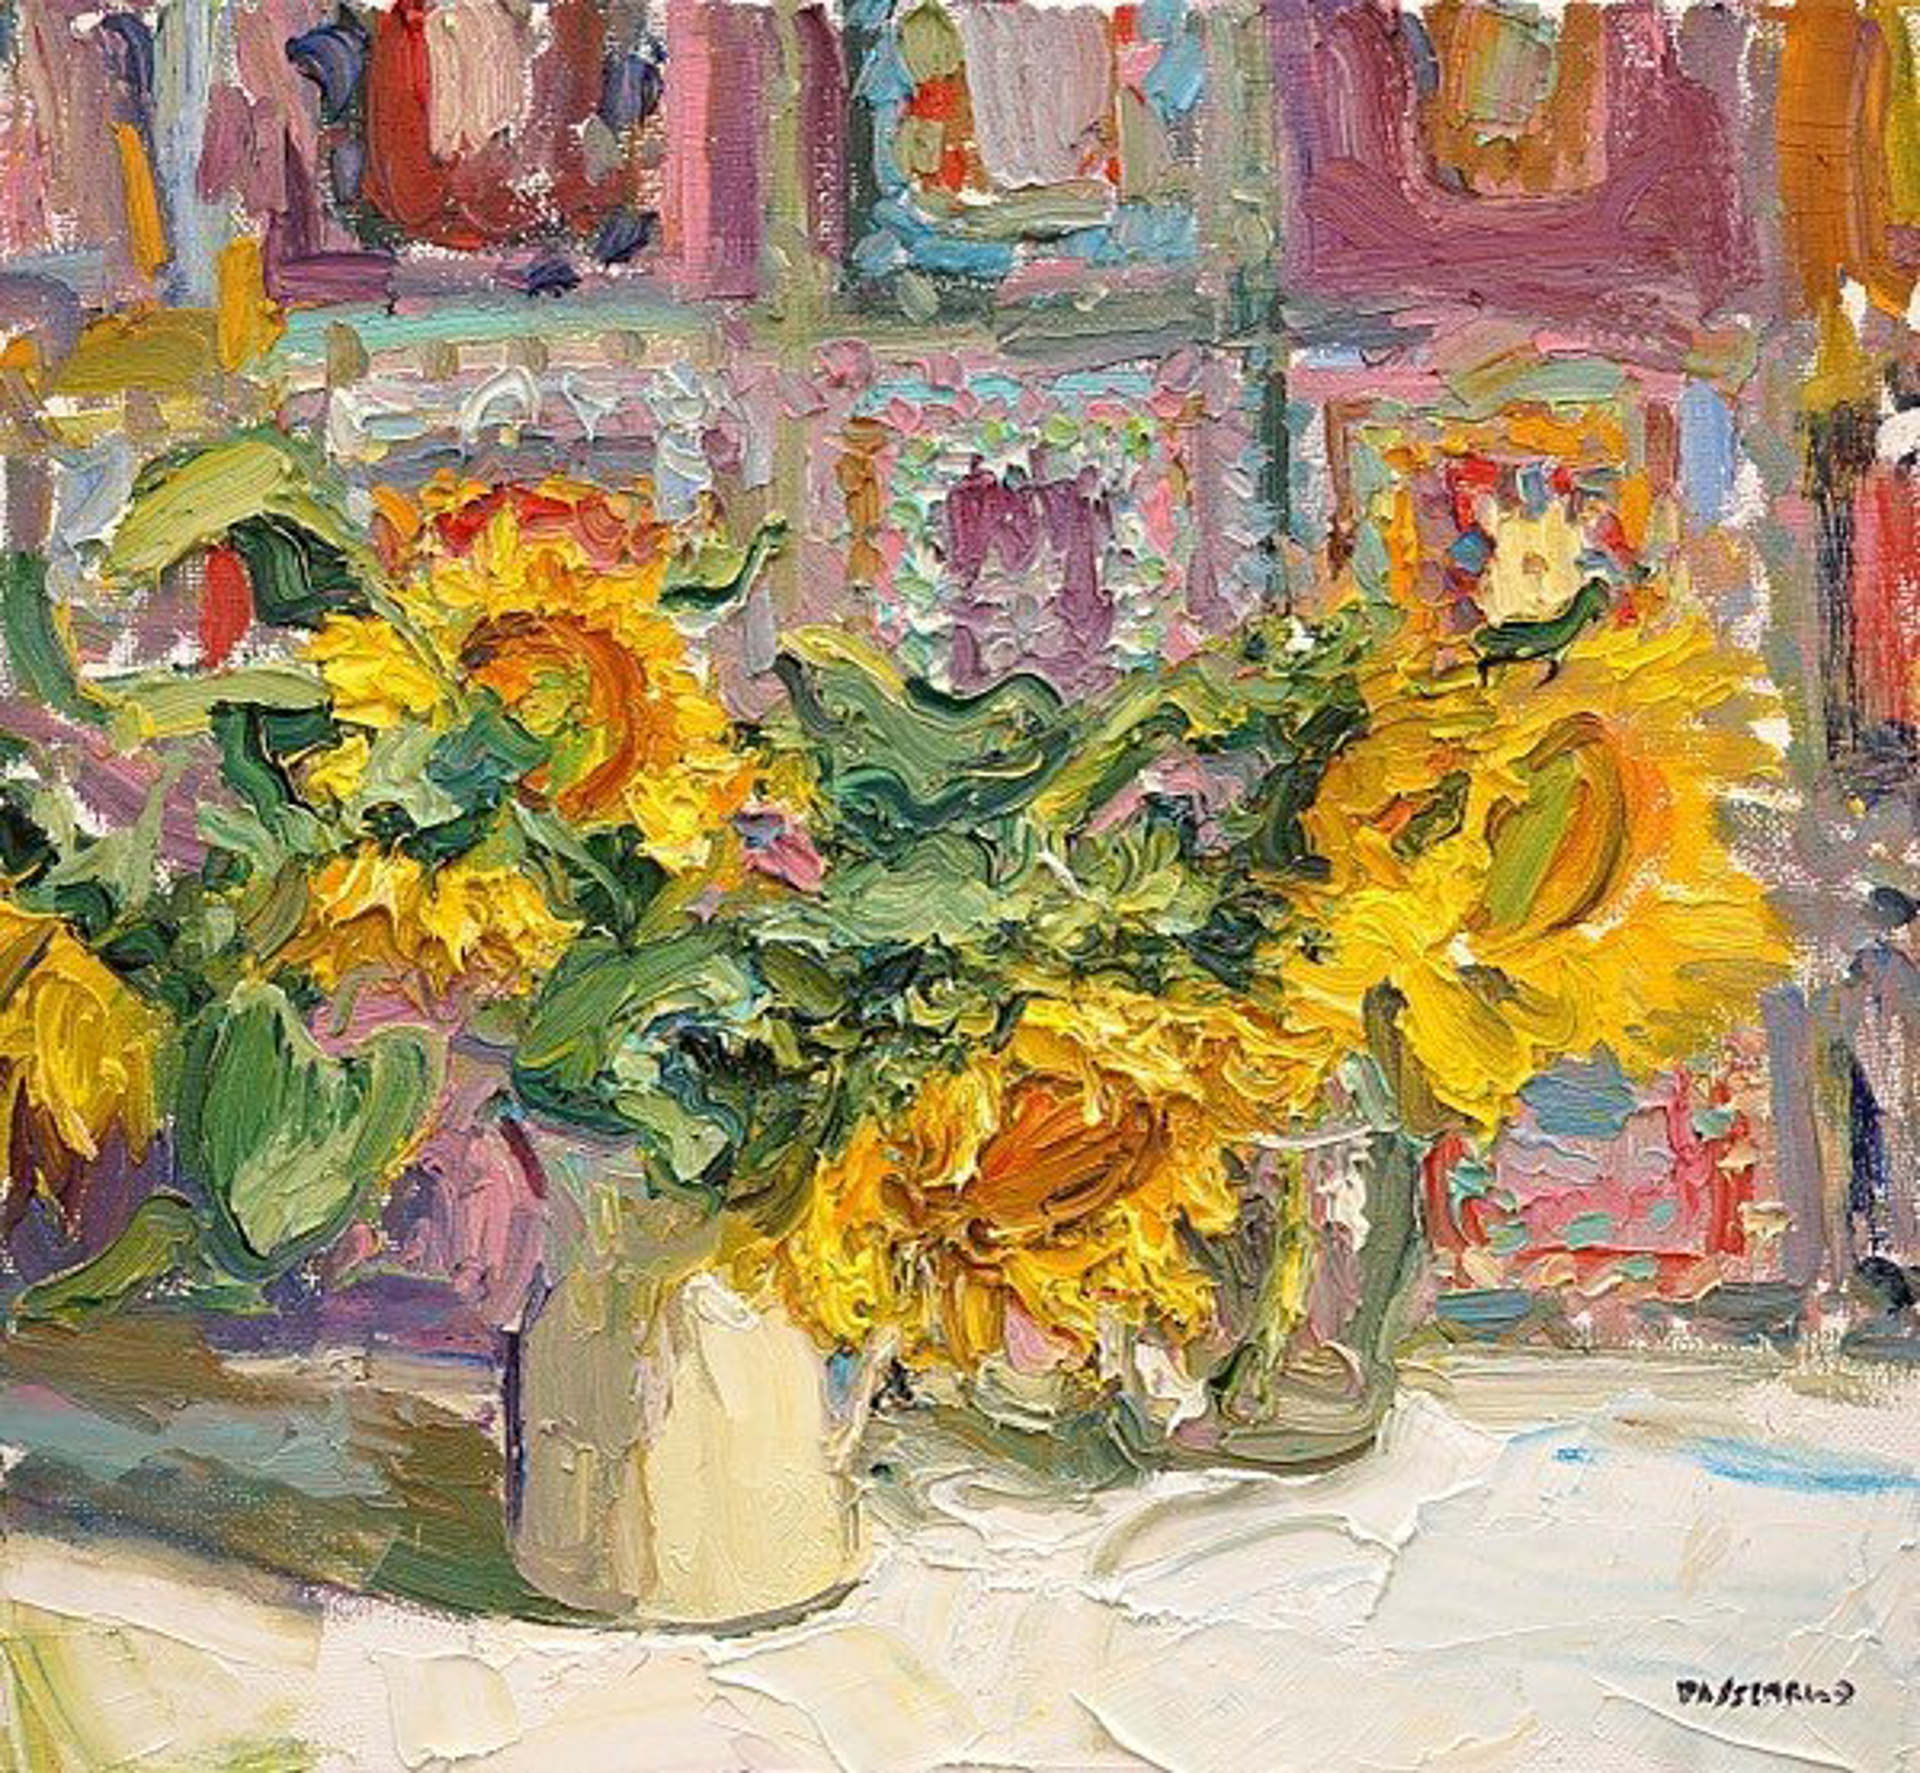 Sunflowers with Quilt by Antonin Passemard